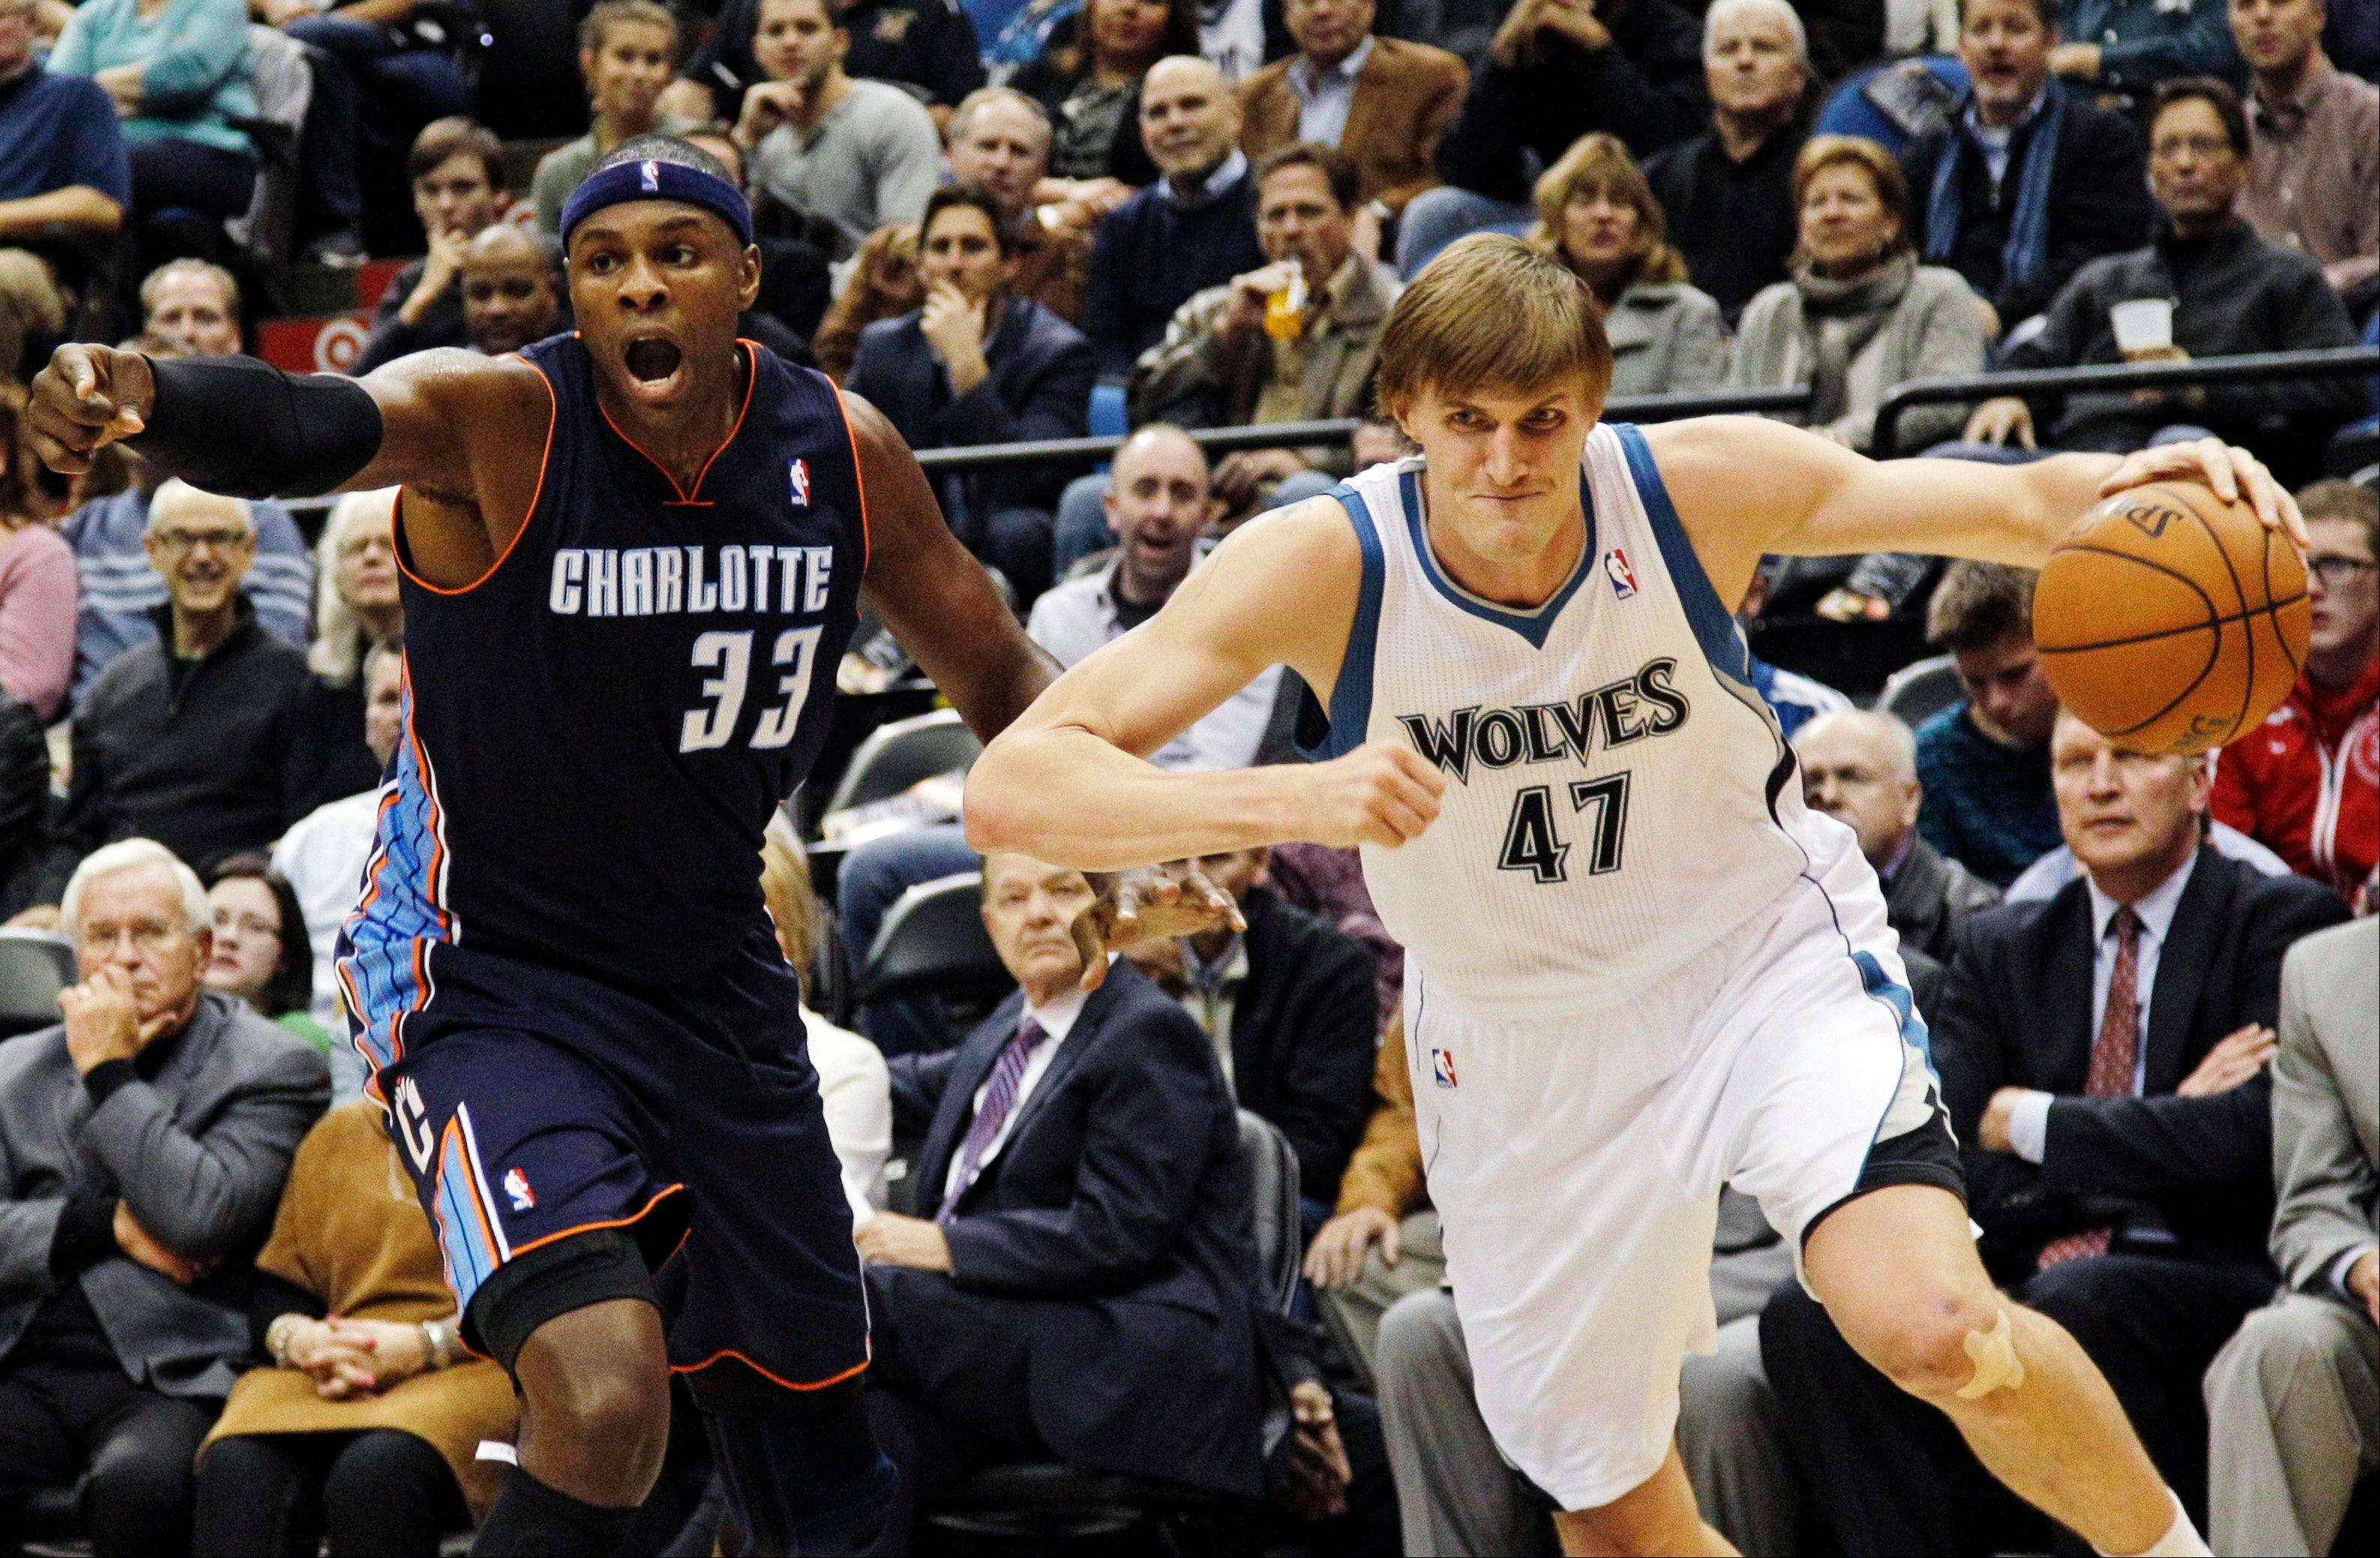 The Minnesota Timberwolves' Andrei Kirilenko drives on the Charlotte Bobcats' Brendan Haywood Wednesday during the first half in Minneapolis.